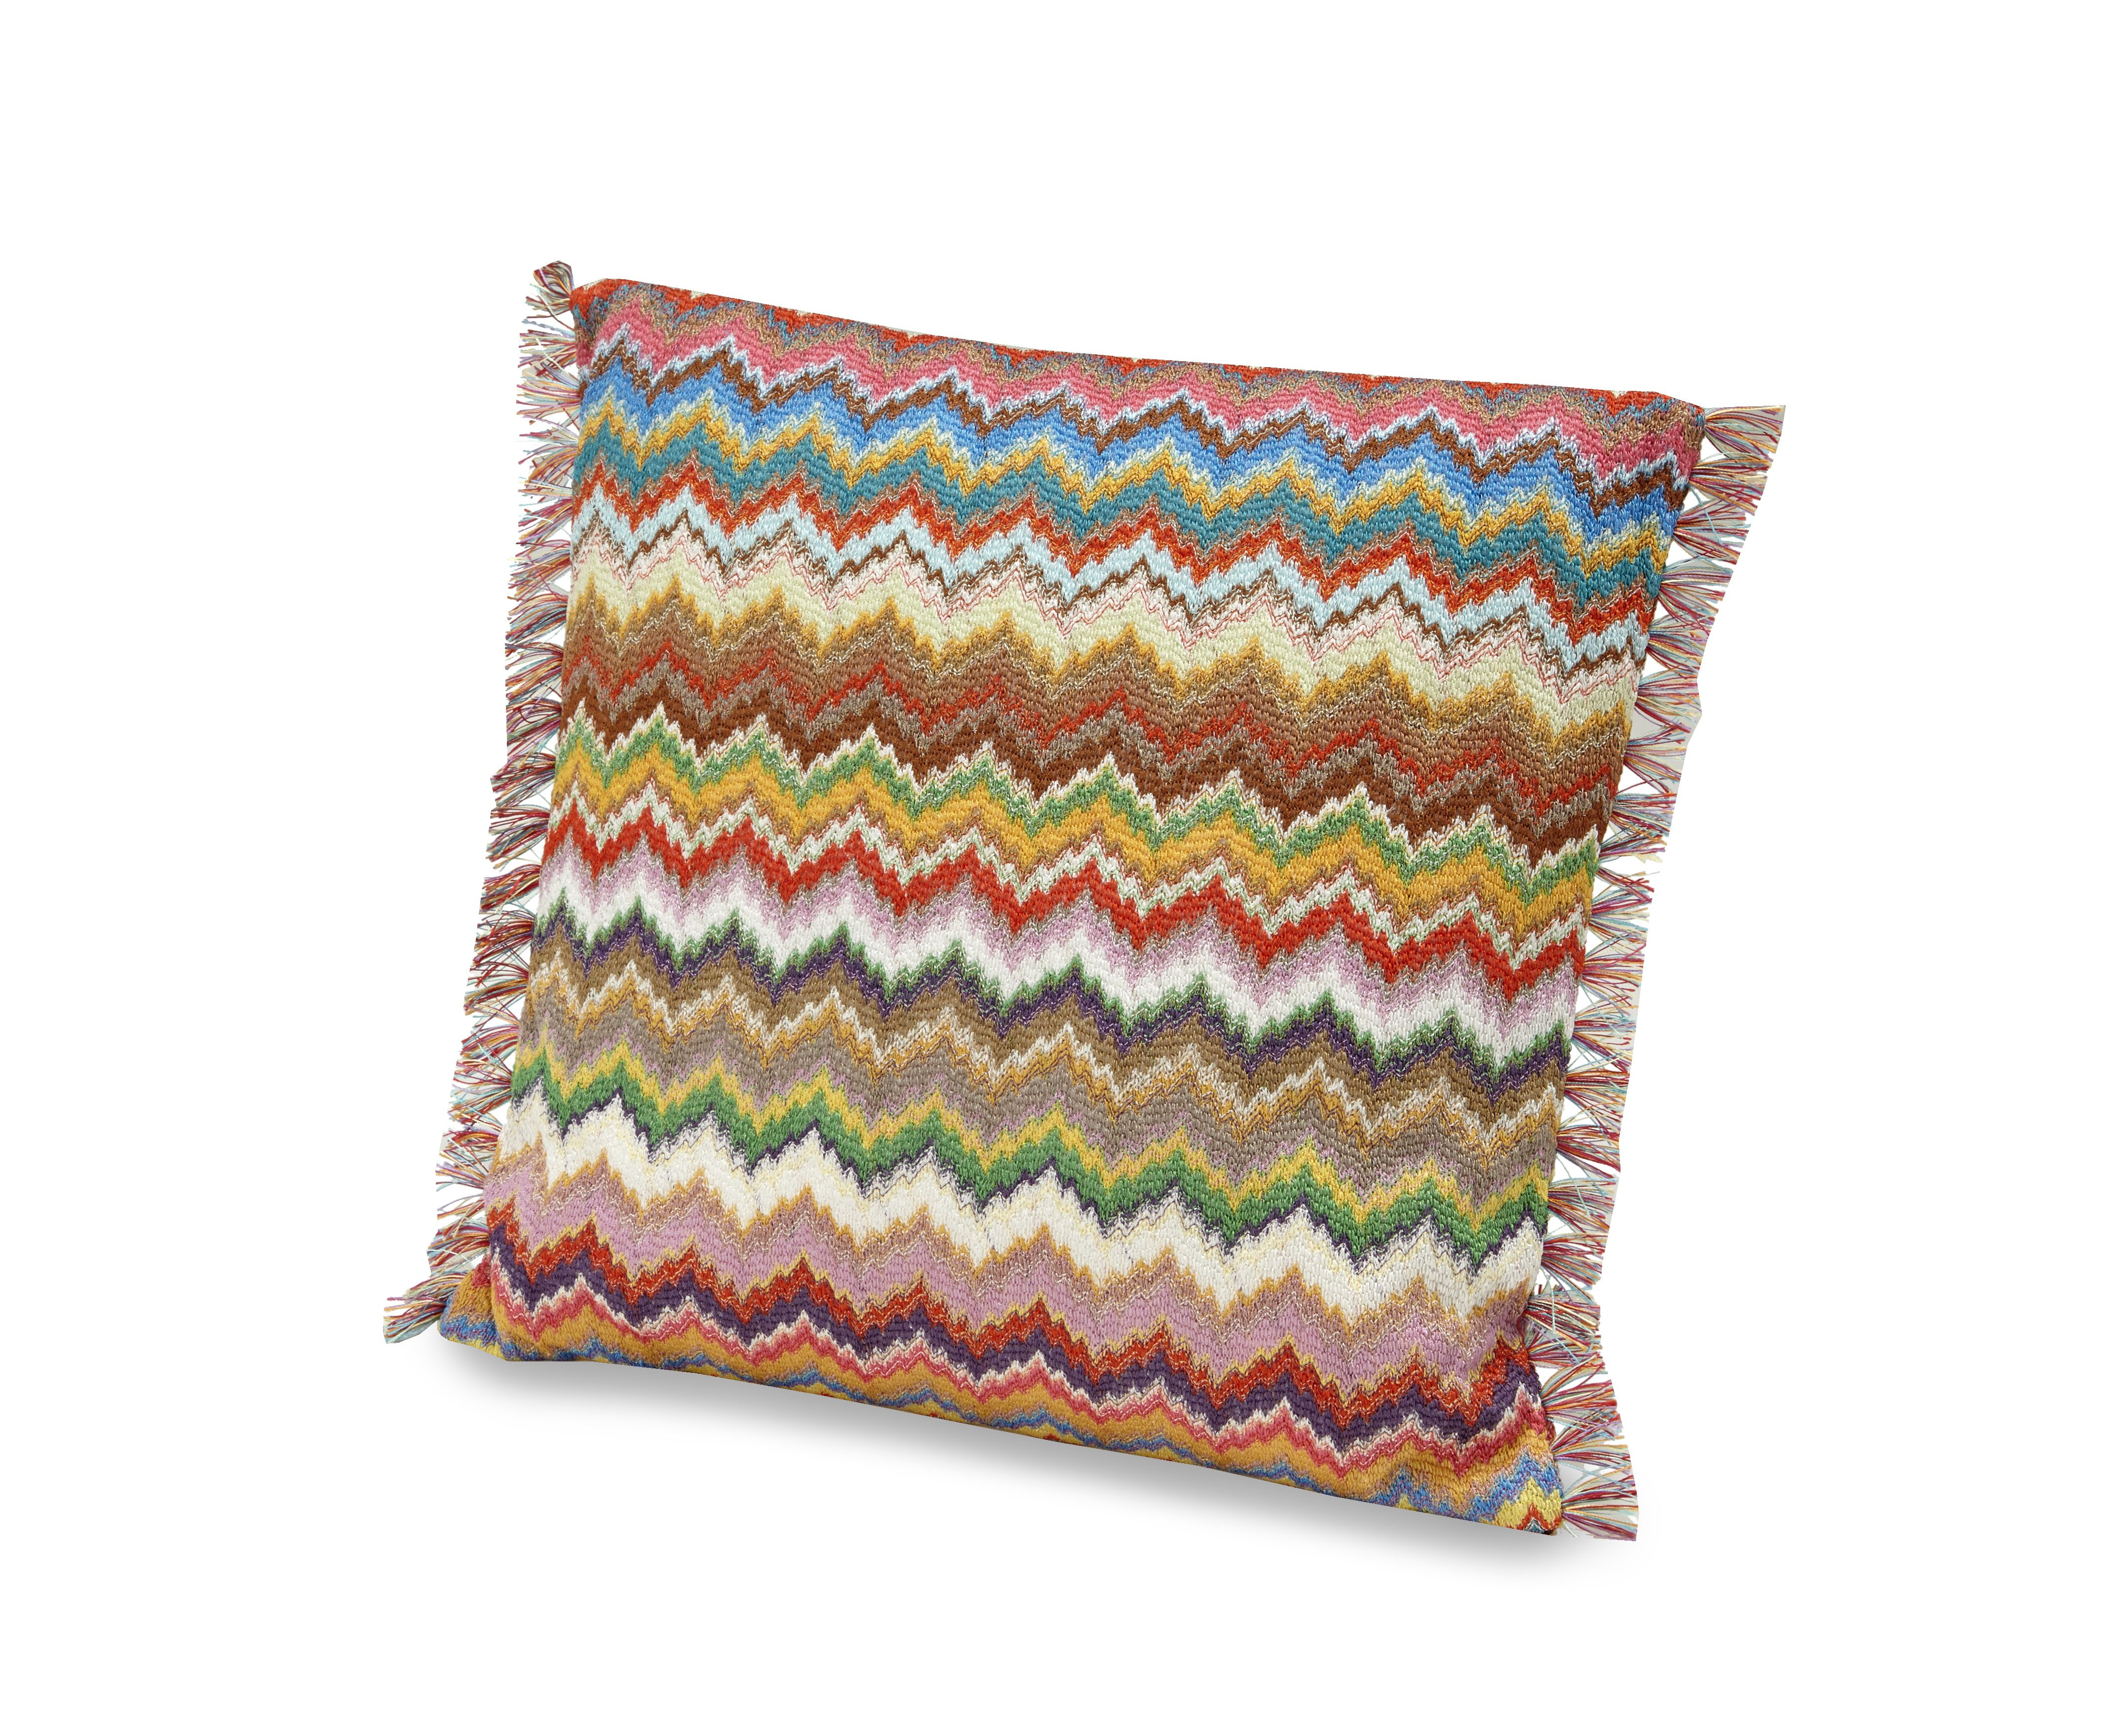 covers missoni pattern lily pillows real hamptons estate showcase trends amp serena holding pillow